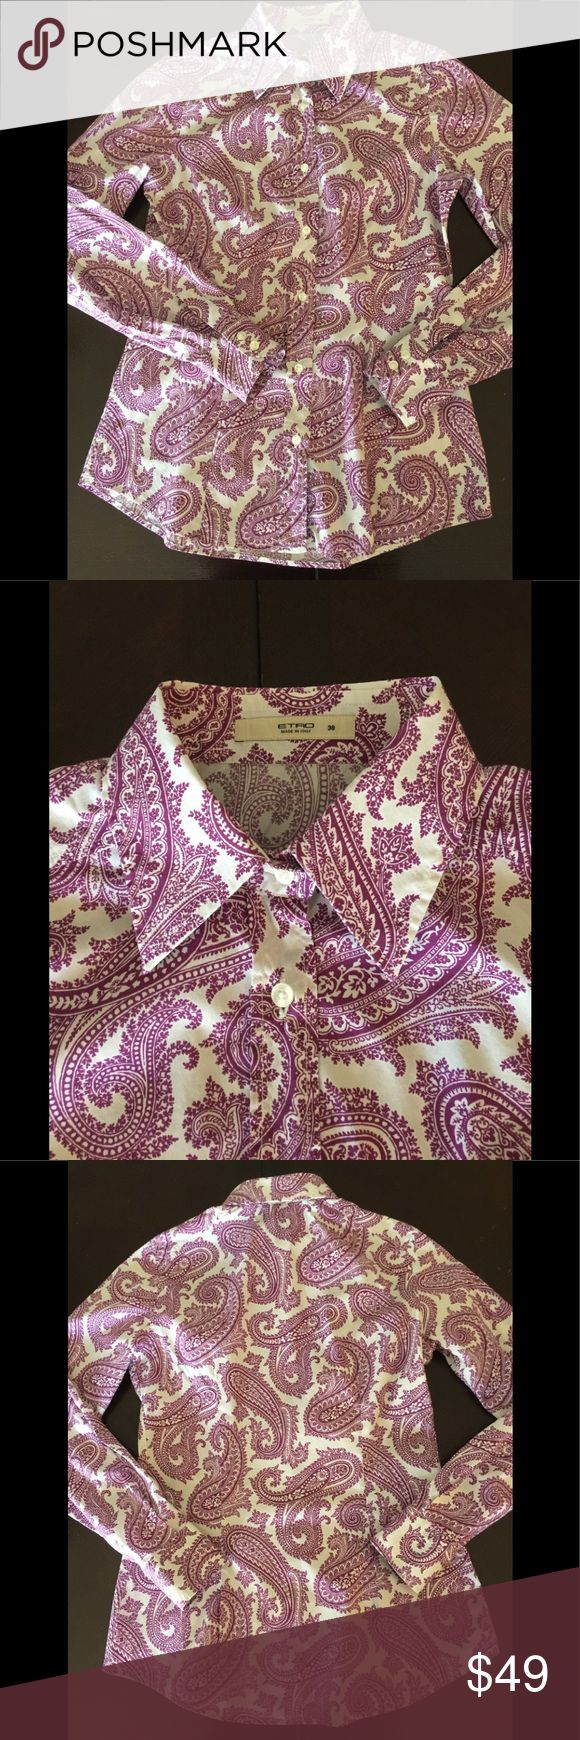 ETRO Italy lady's button down shirts size 38 Lady's paisley print button down shirts size 38 Like brand new Very good condition Etro Tops Button Down Shirts